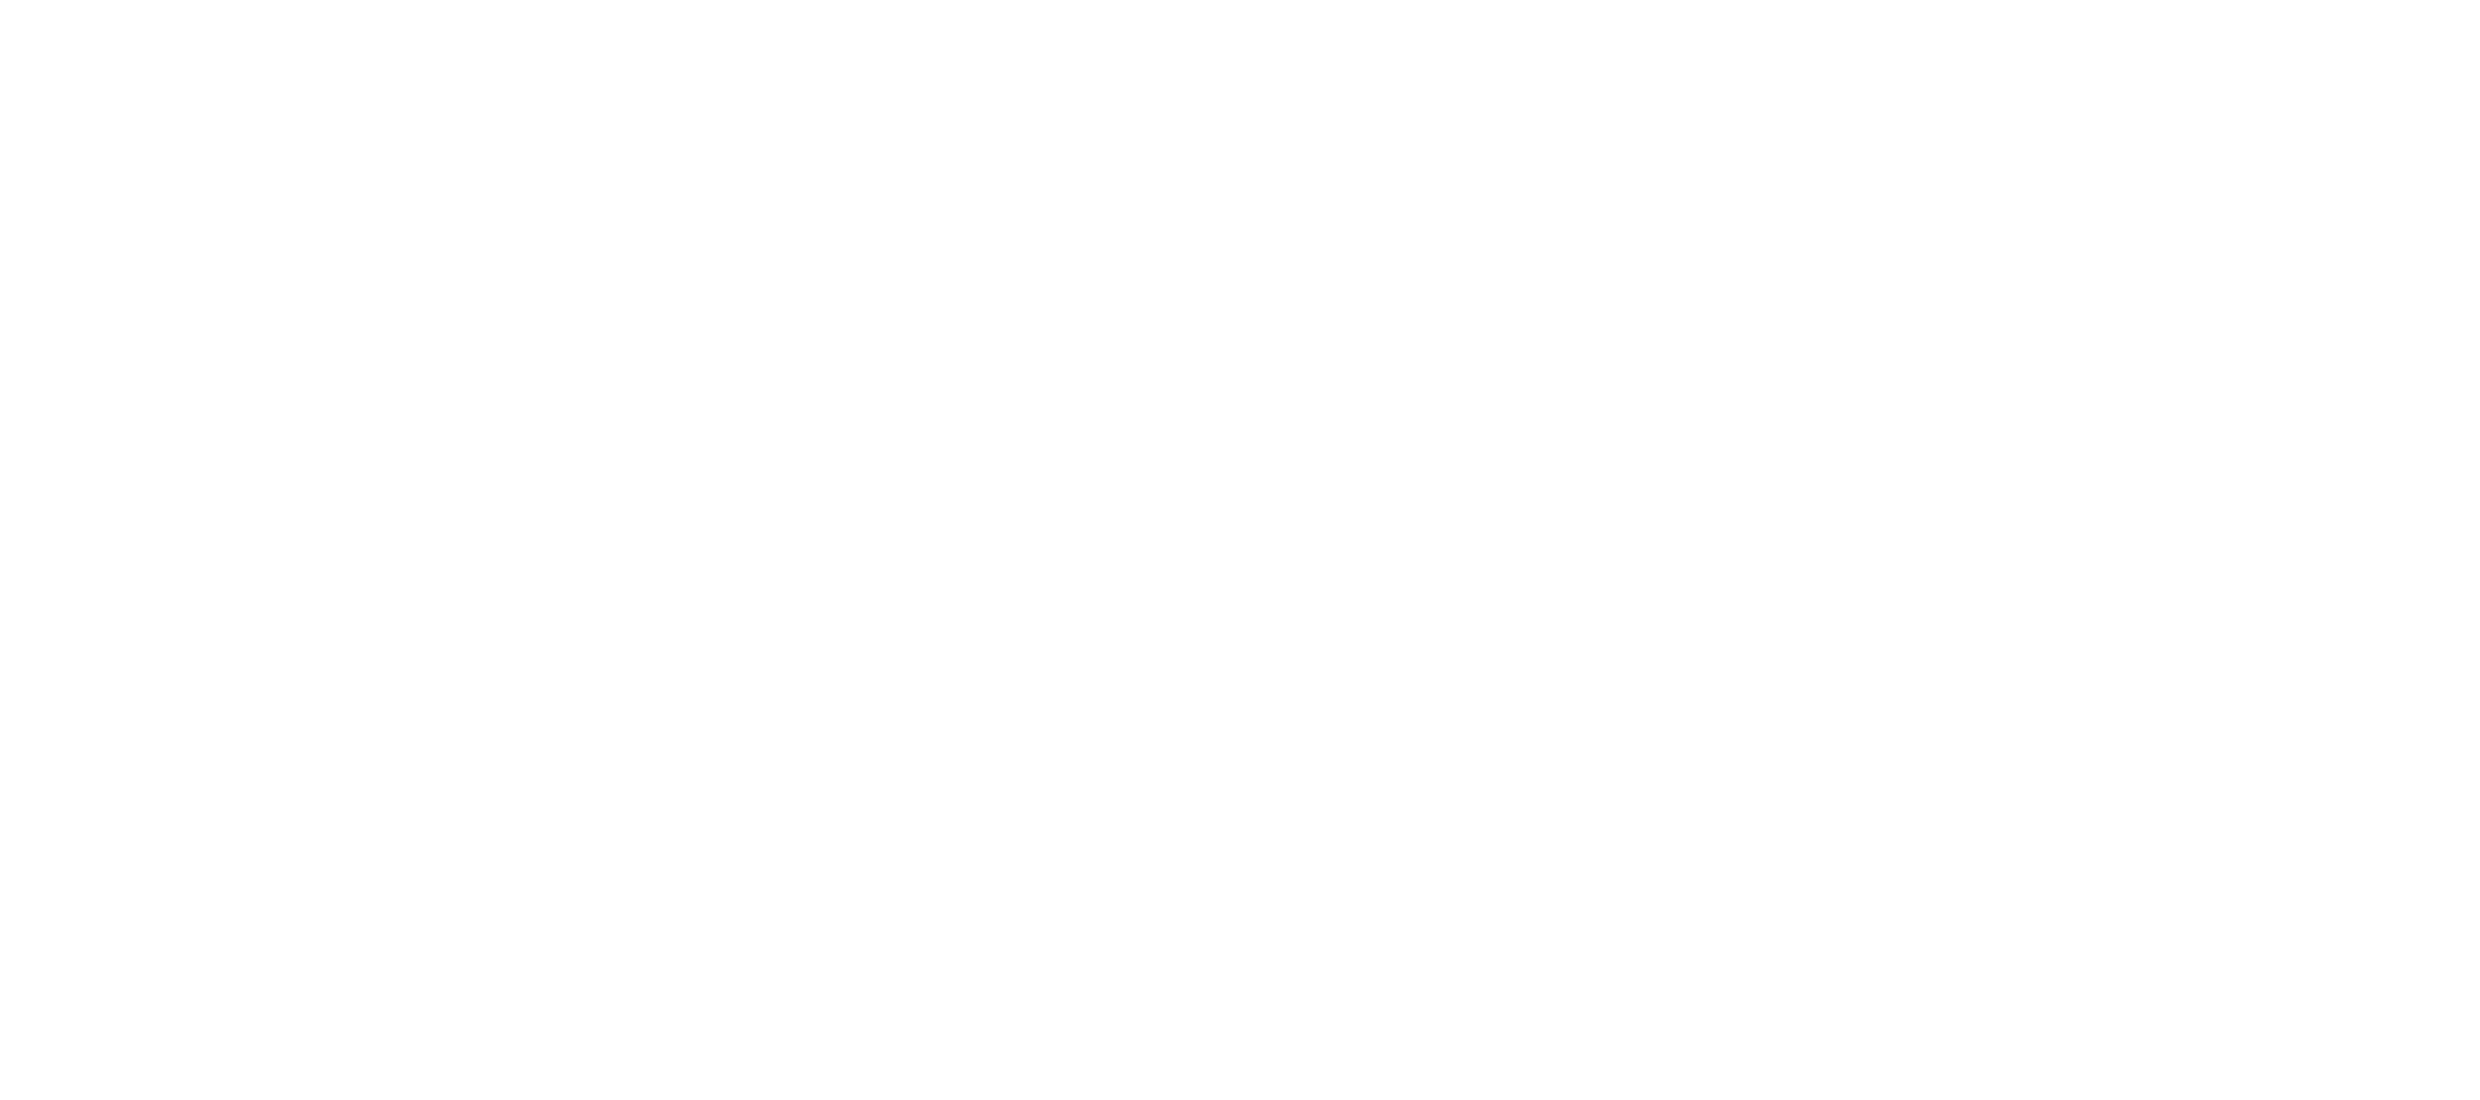 Turandot by Giacomo Puccini - Rescheduled - Date and Time To Be Announced